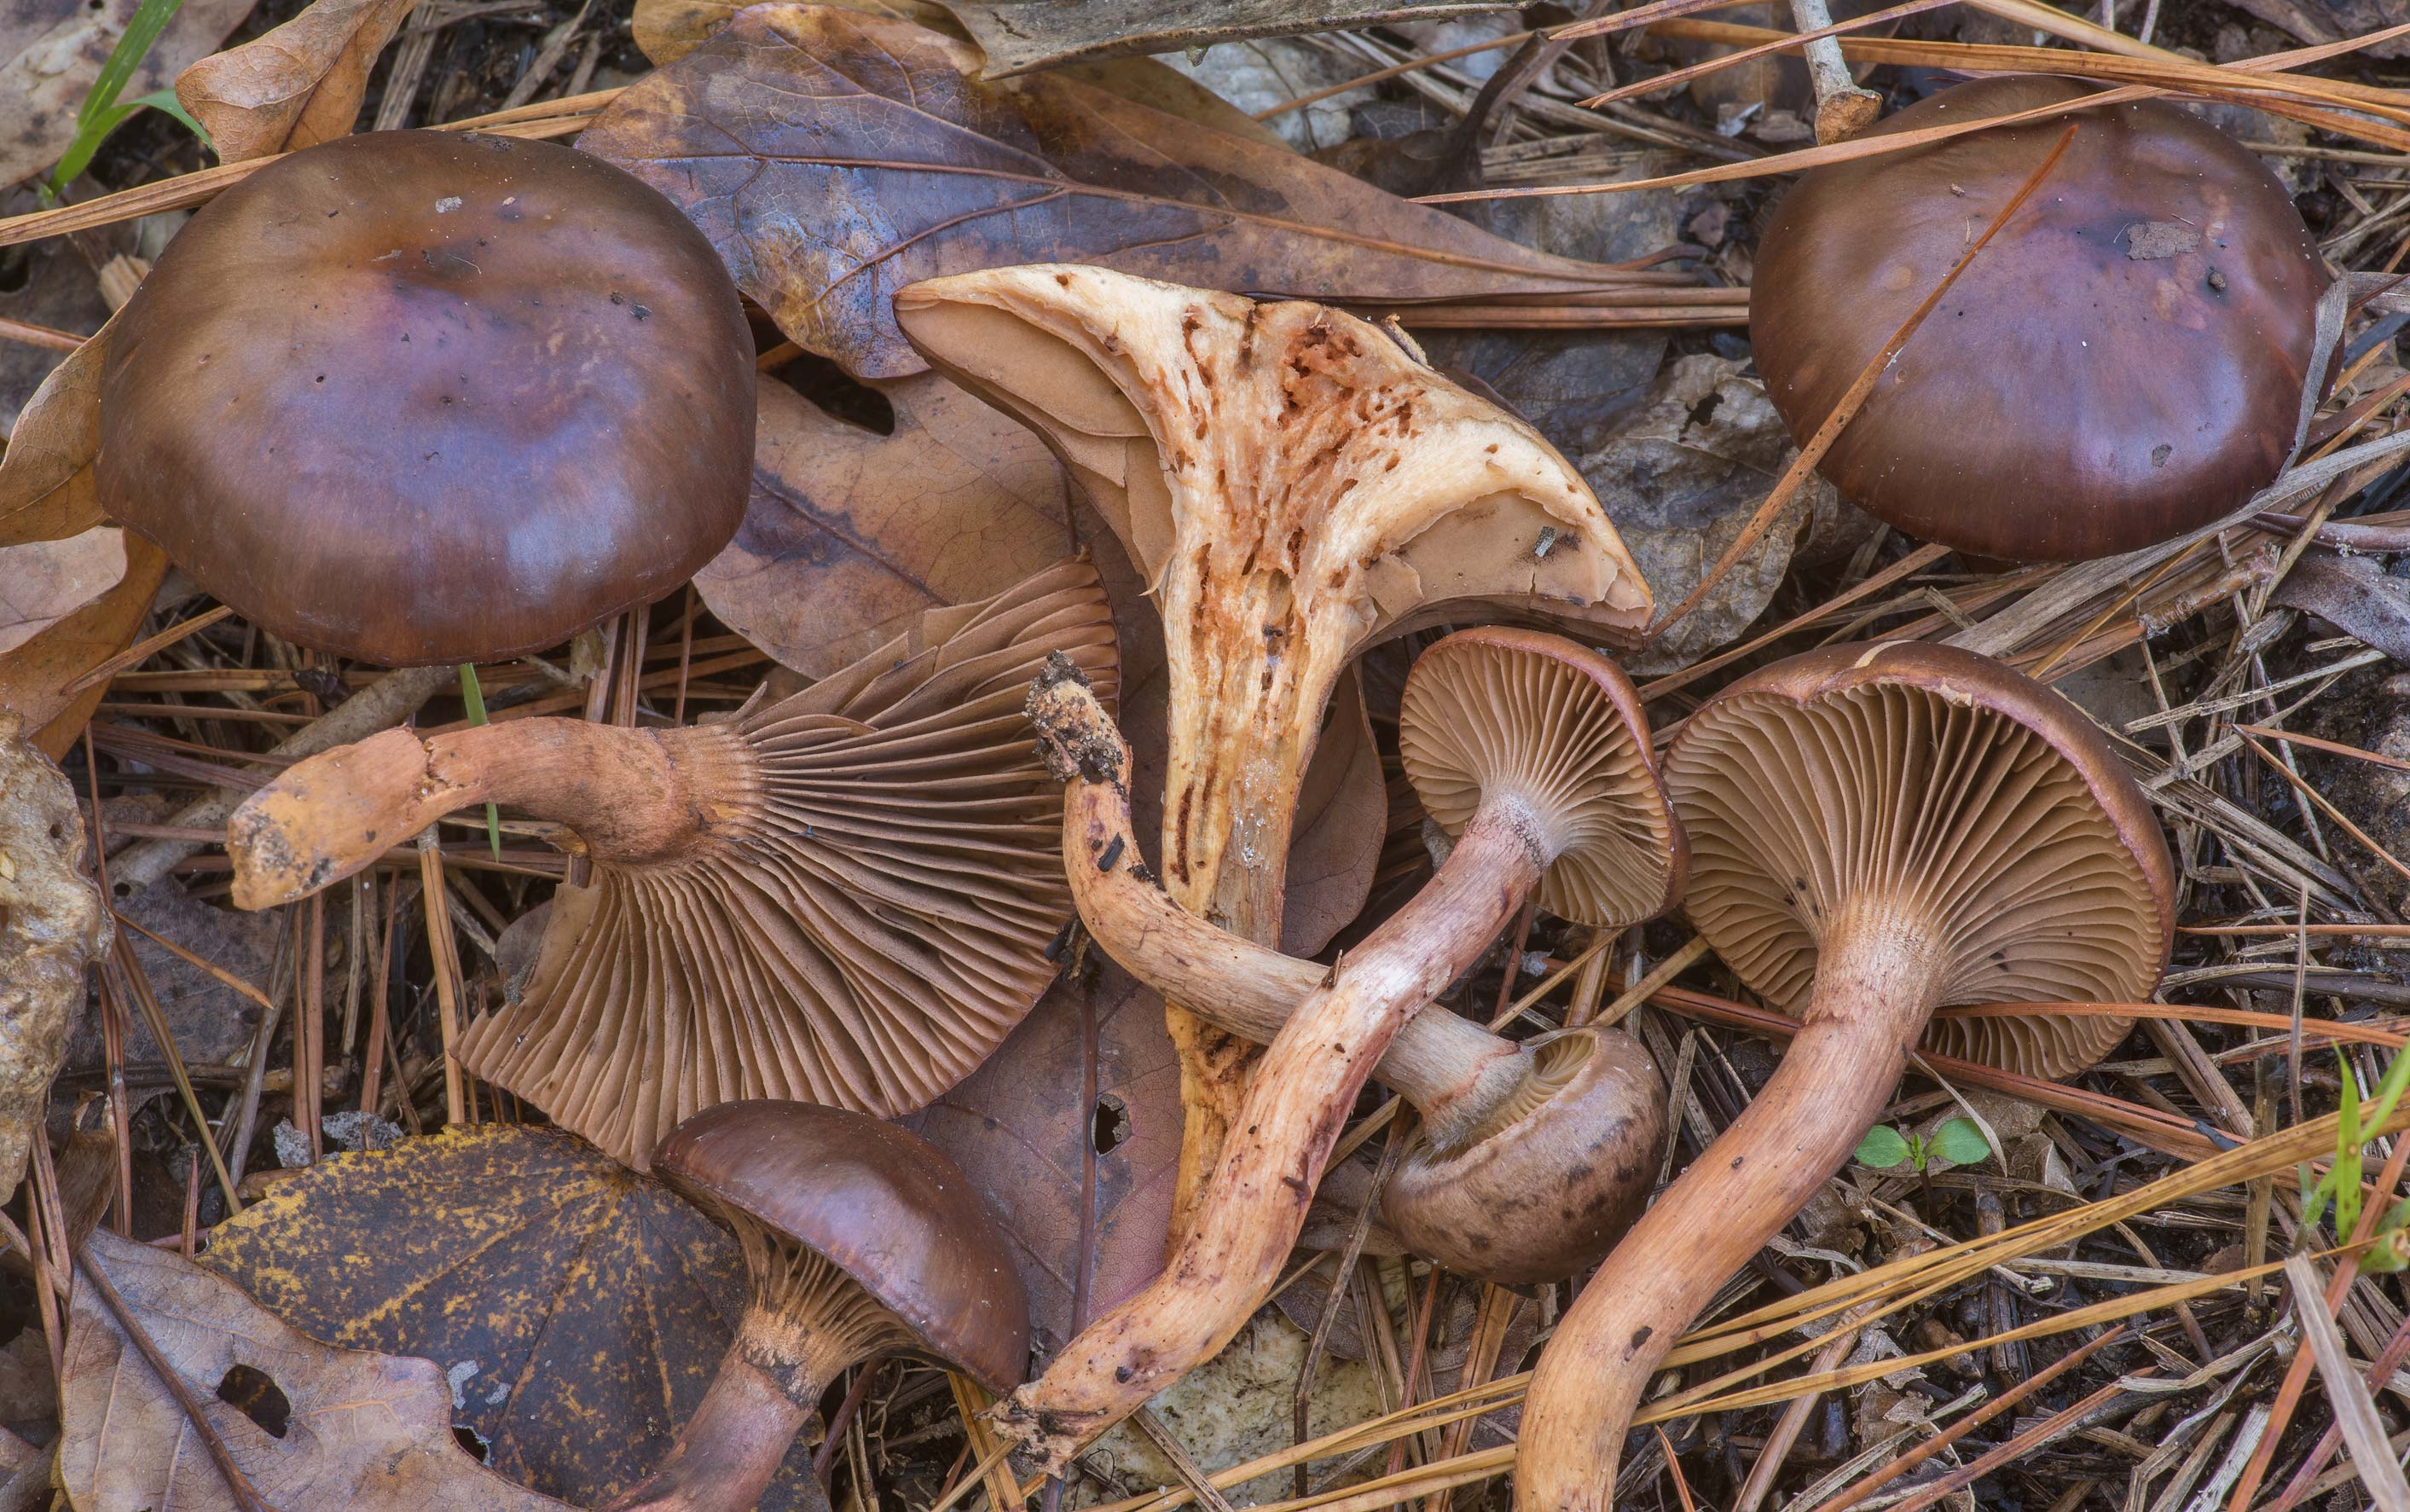 Dissected pine spike mushrooms (Chroogomphus...in Huntsville State Park. Texas